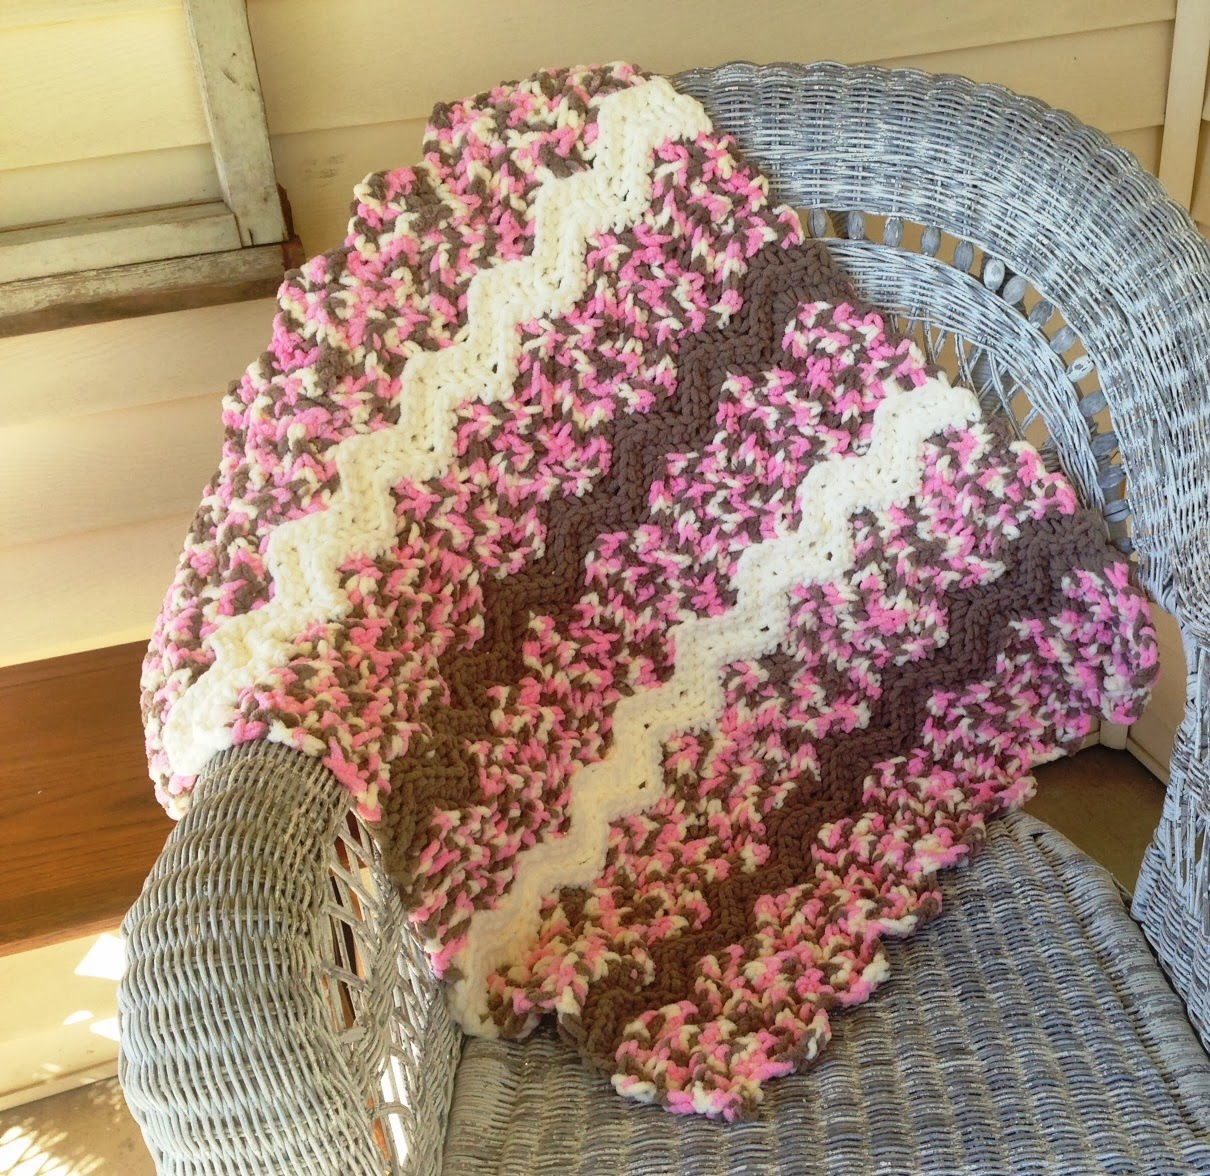 Crochet Patterns For Bernat Blanket Yarn : New Crochet Bernat Baby Blanket Pattern The Kamden Ripple Blanket